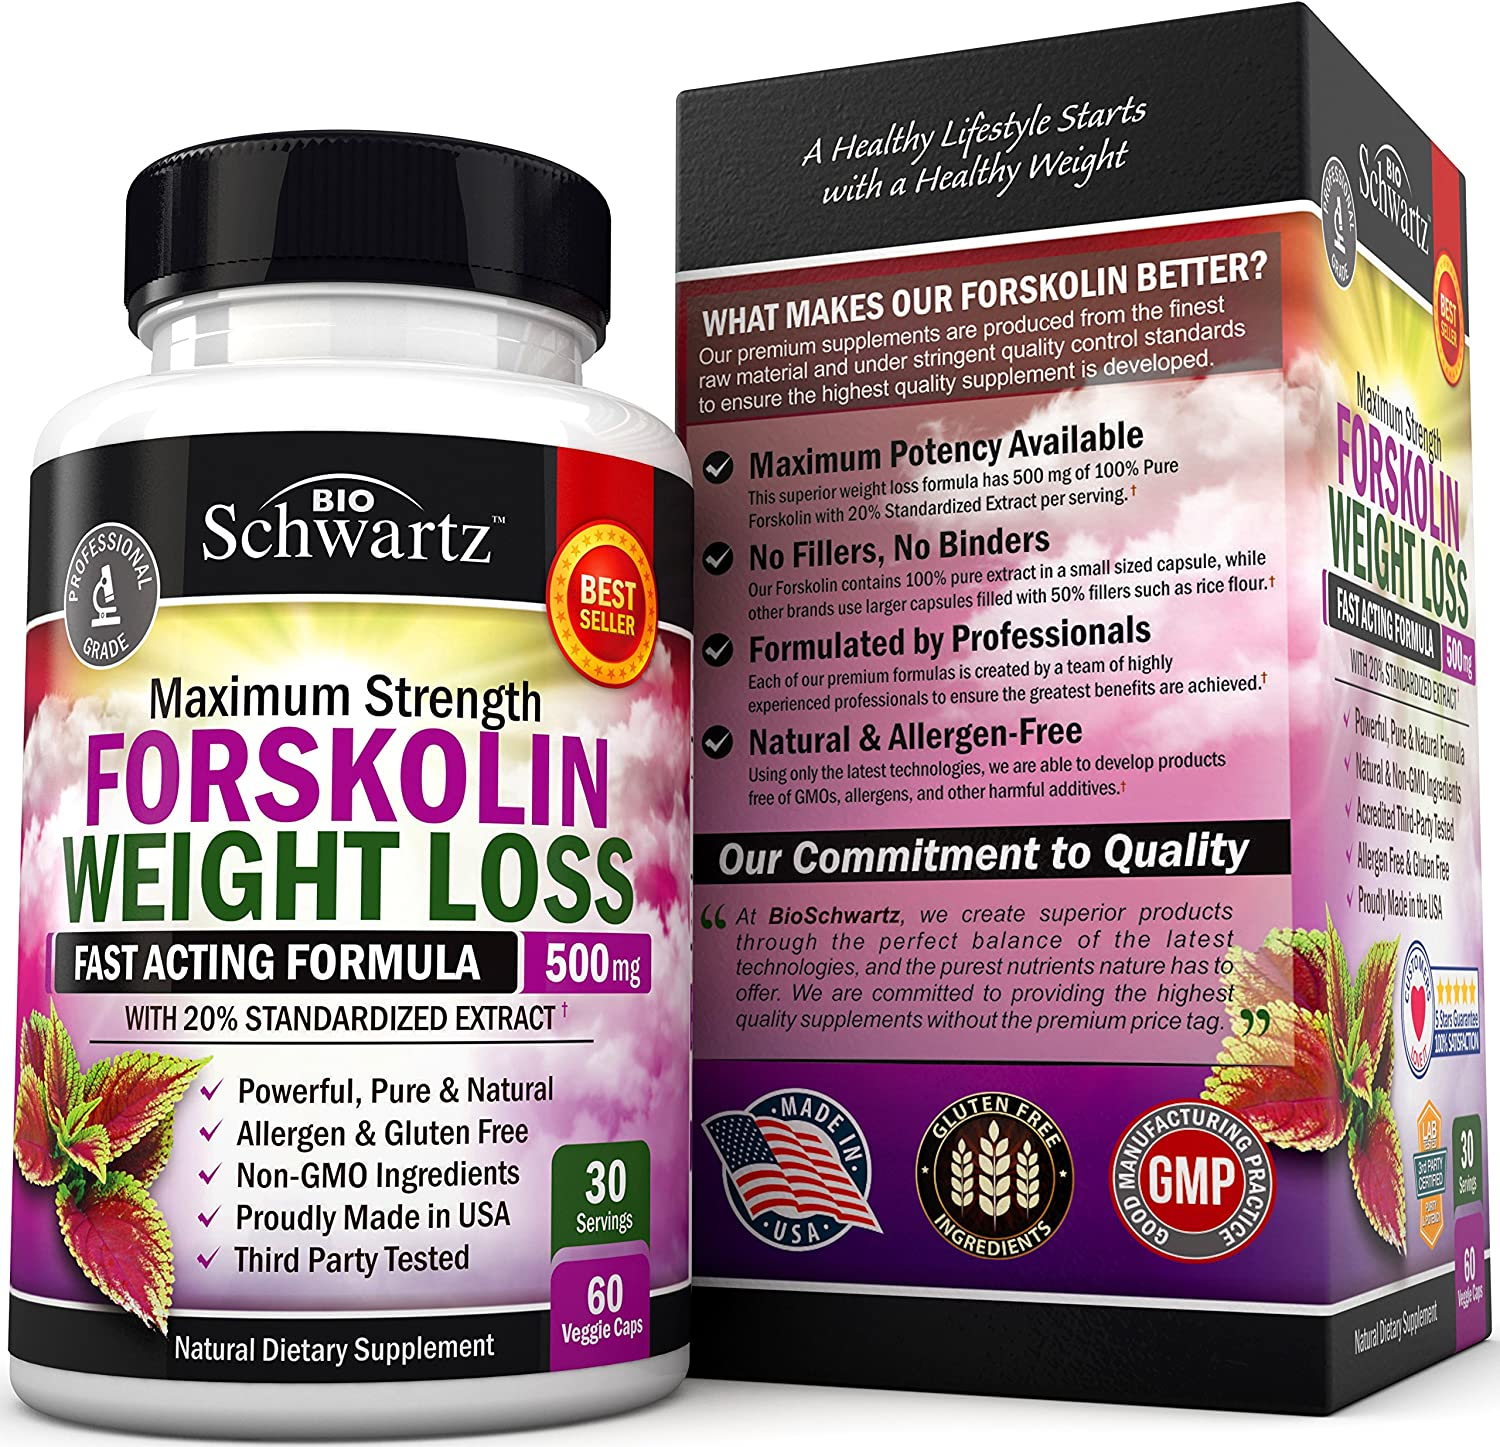 forskolin natural foods store rochester ny